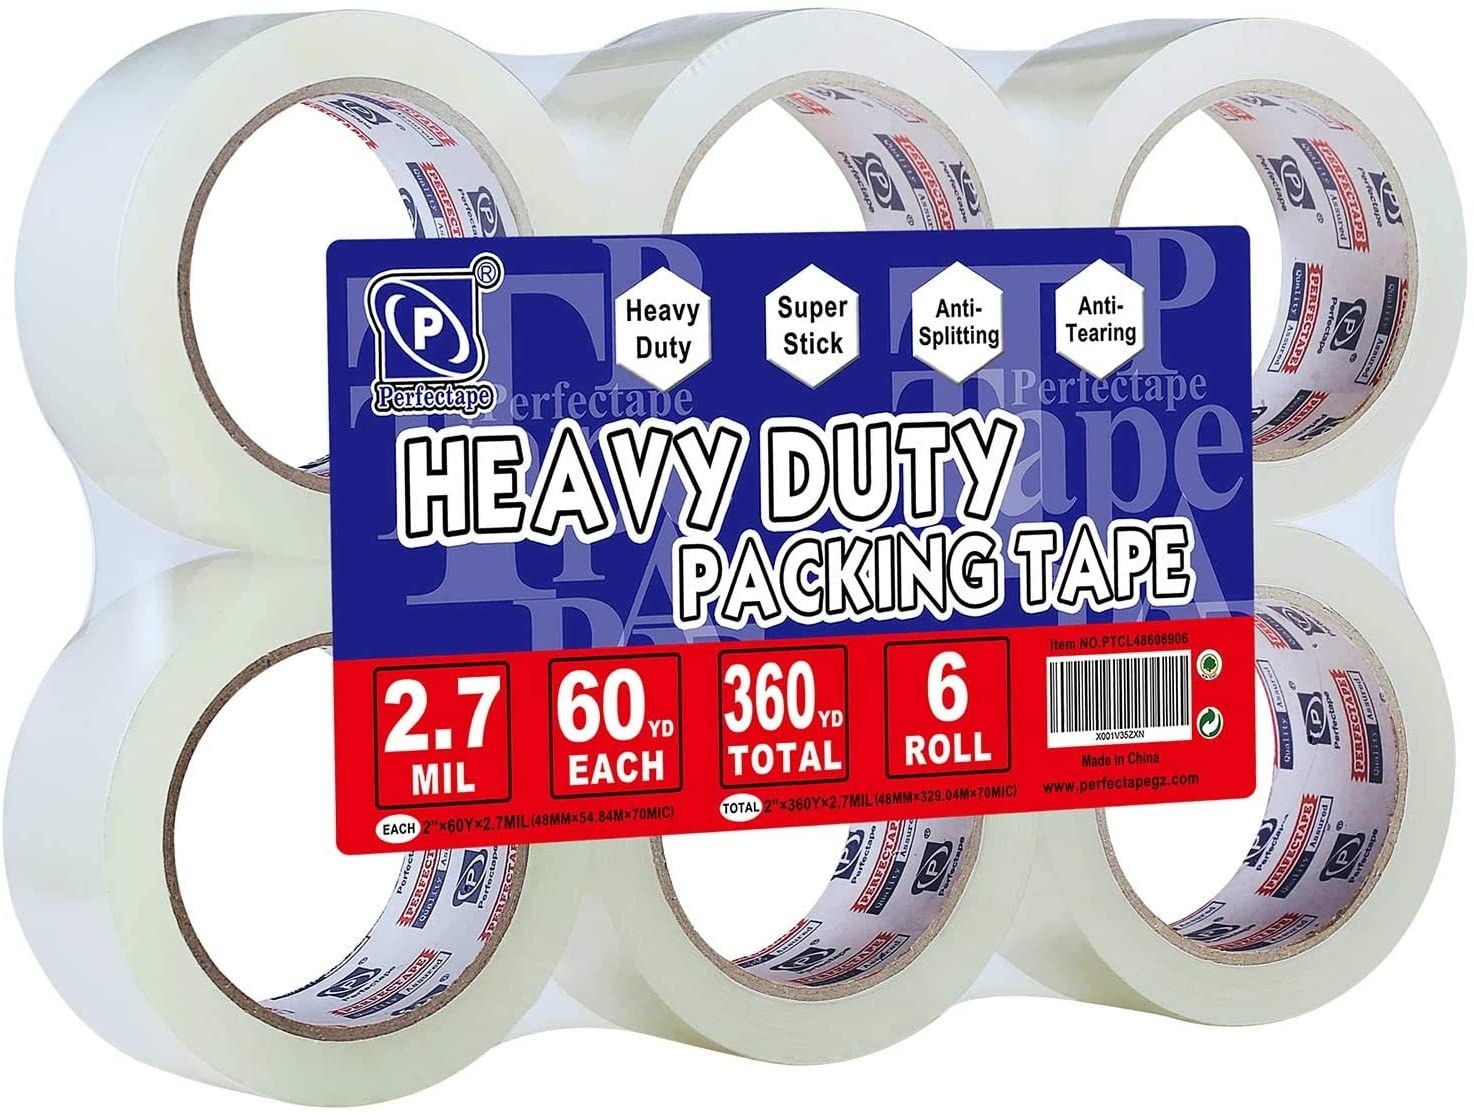 Six rolls of clear packing tape packaged together with a large blue and red label